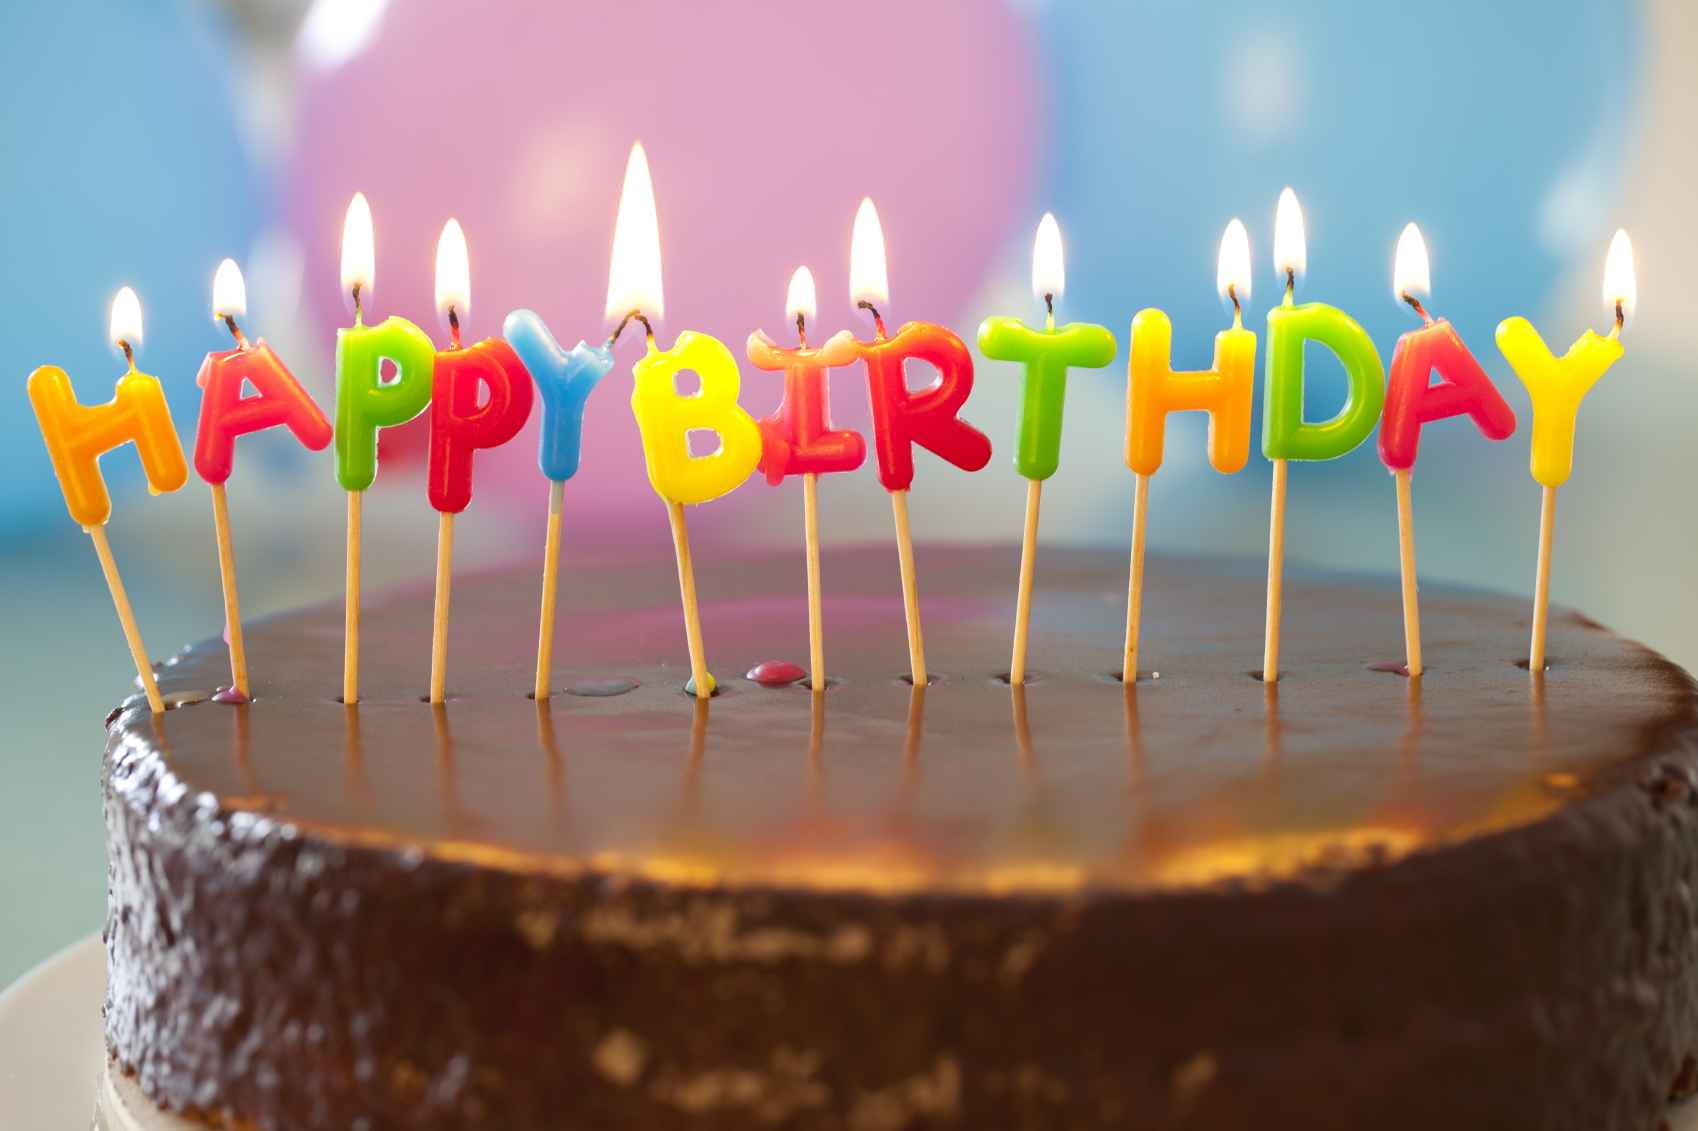 A New View on Birthdays